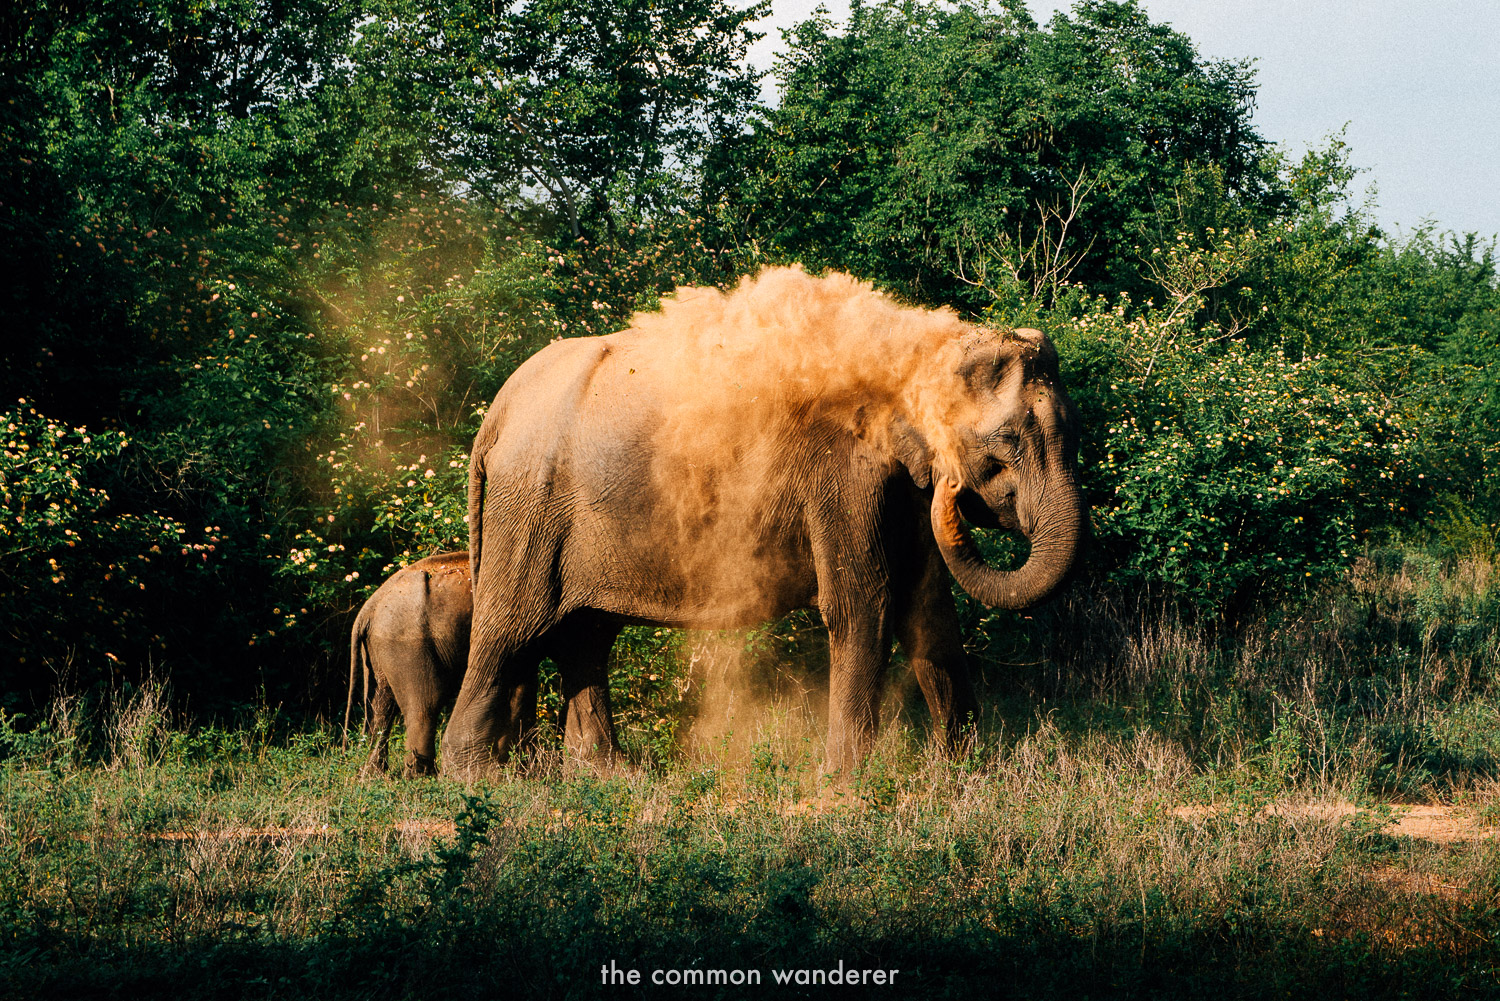 An elephant in the wilds of Sri Lanka, where they should be